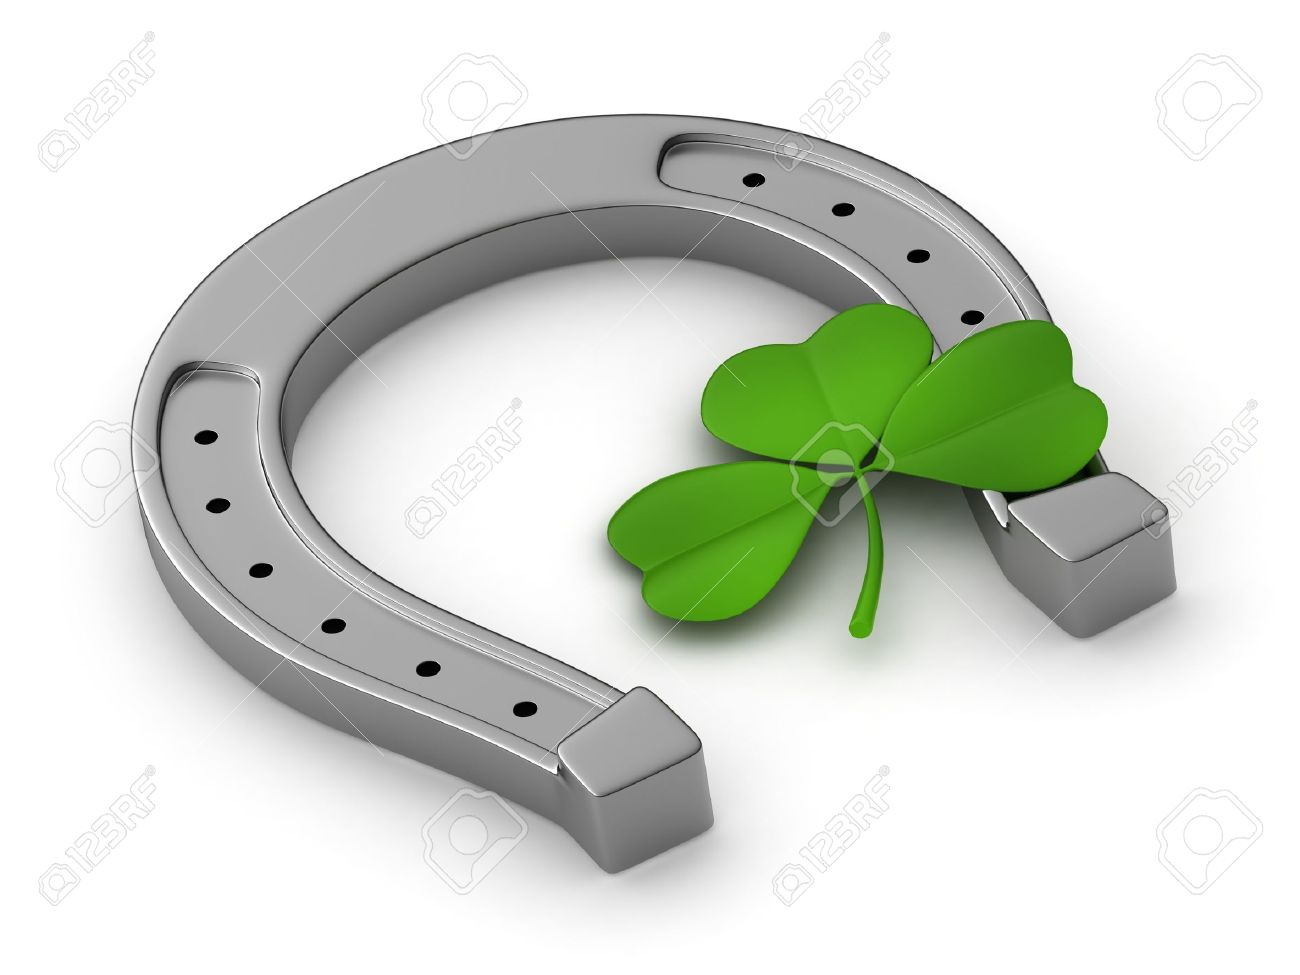 3D Illustration of a Clover and a Horseshoe Stock Photo - 12214951